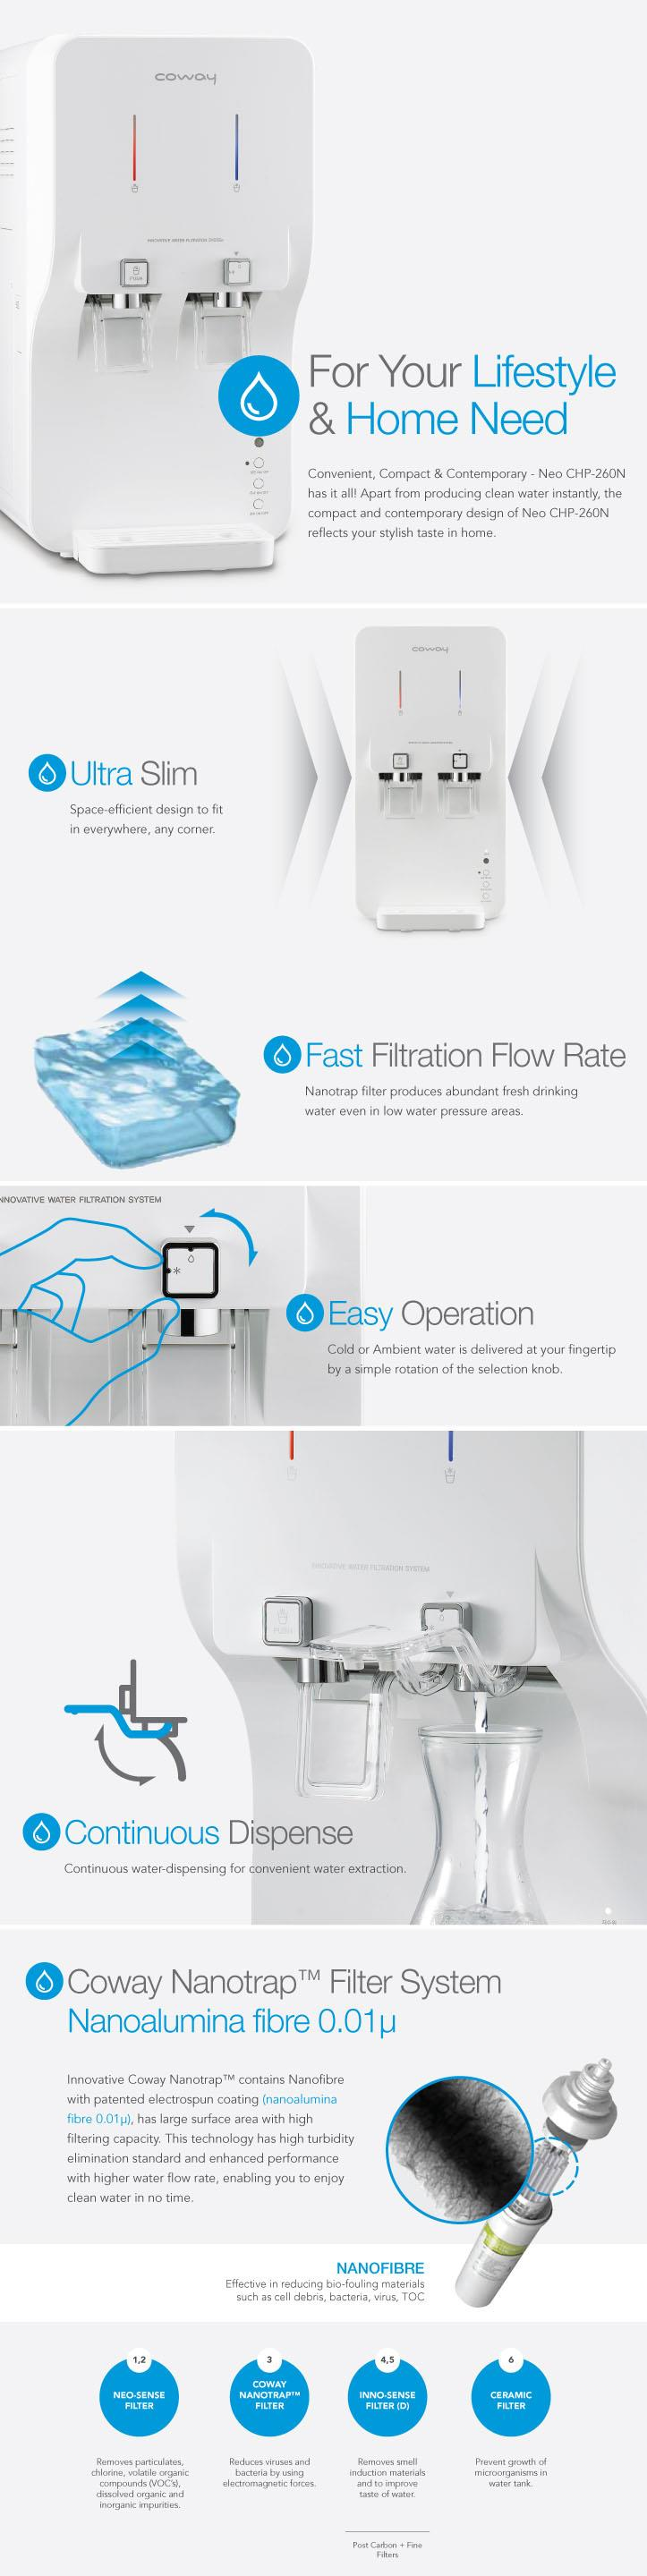 Water Purifier For Home Coway Neo Chp 260n Hot Cold Room Wa End 4 29 2017 1015 Am